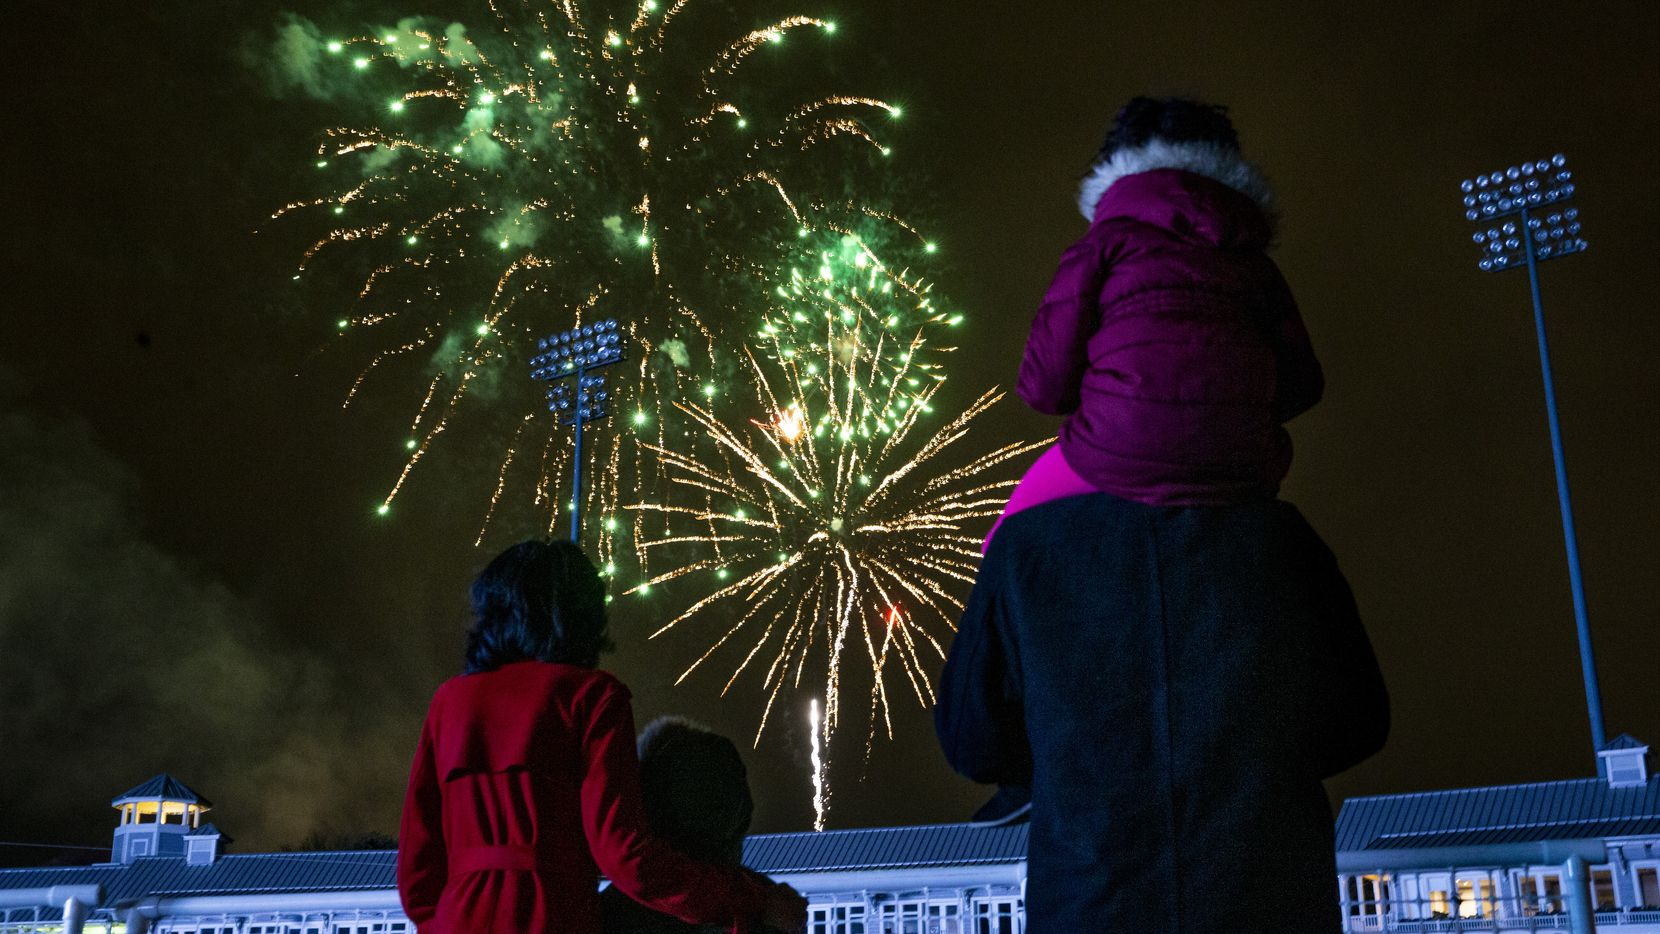 A family watches fireworks at the Day 1 festival in 2019.